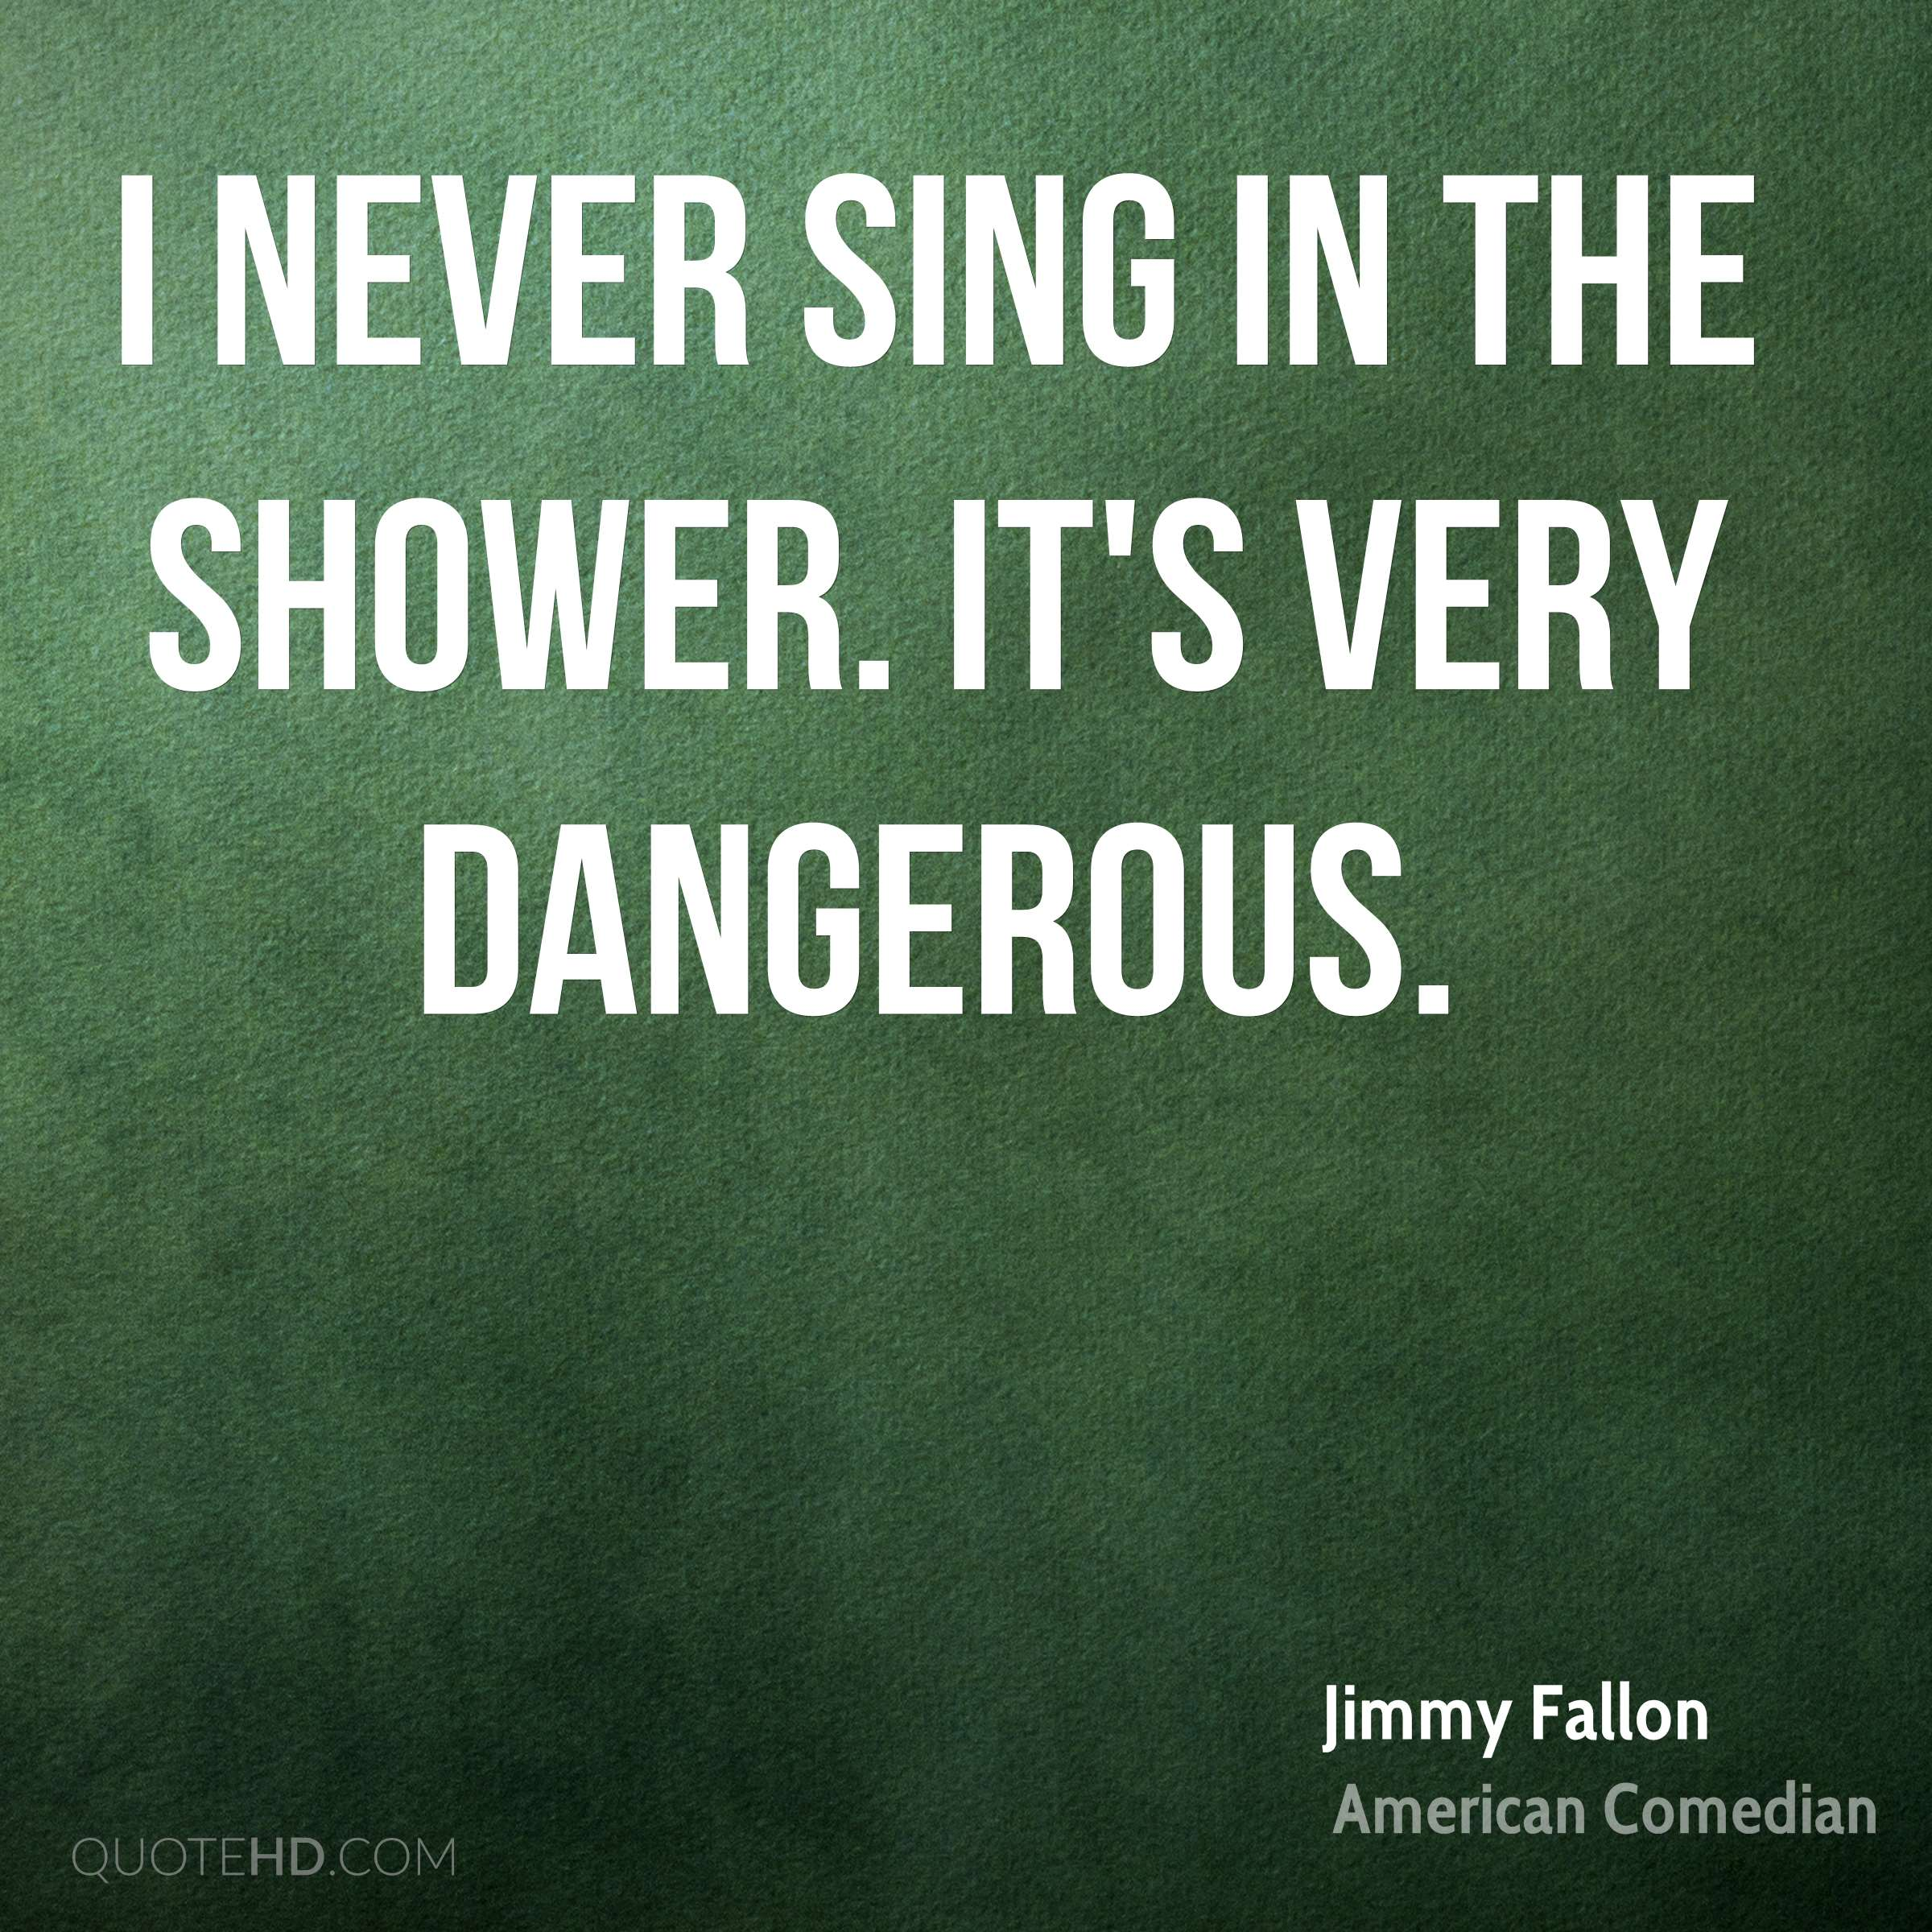 I never sing in the shower. It's very dangerous.